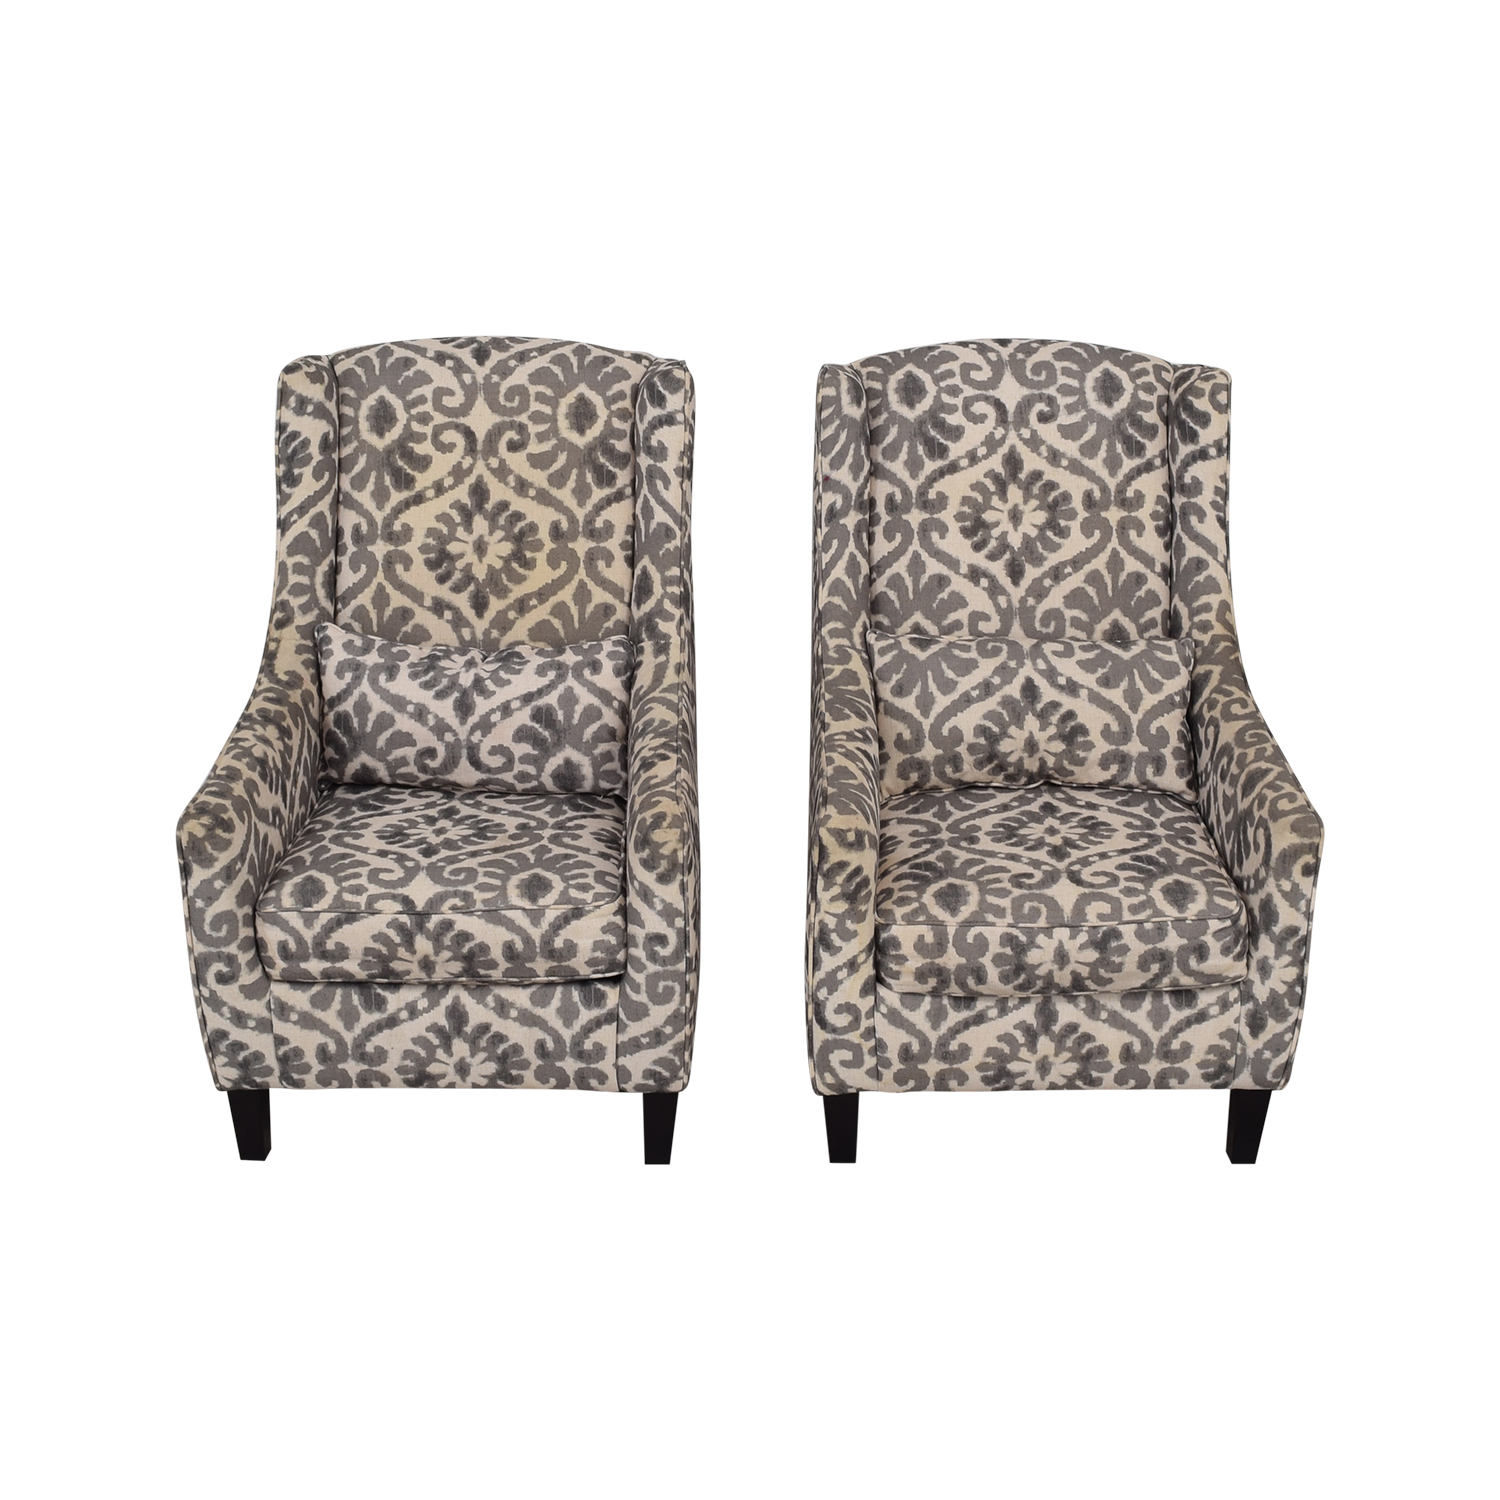 87 Off Ashley Furniture Ashley Furniture Grey And White Accent Chairs Chairs